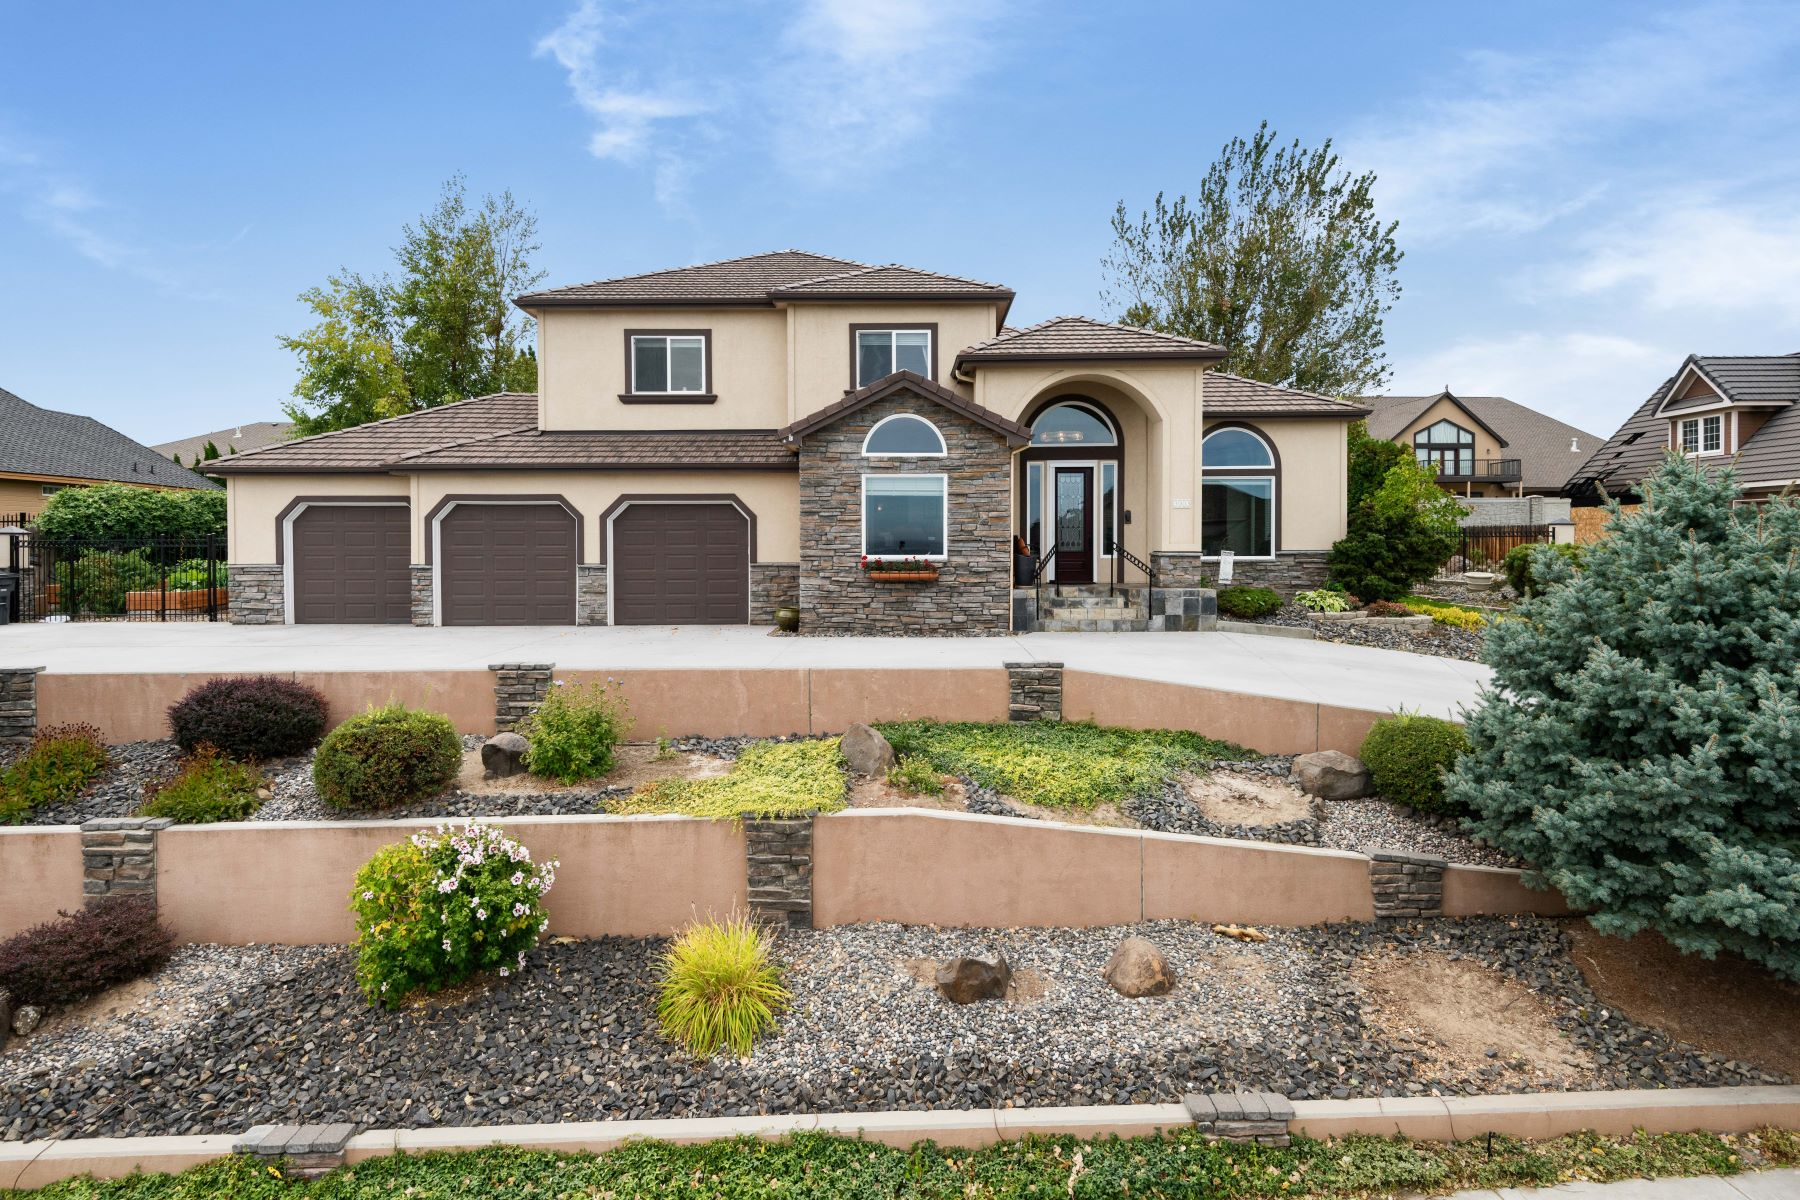 Single Family Homes for Sale at Canyon Lakes South Hill 3903 W 43rd Ave Kennewick, Washington 99337 United States